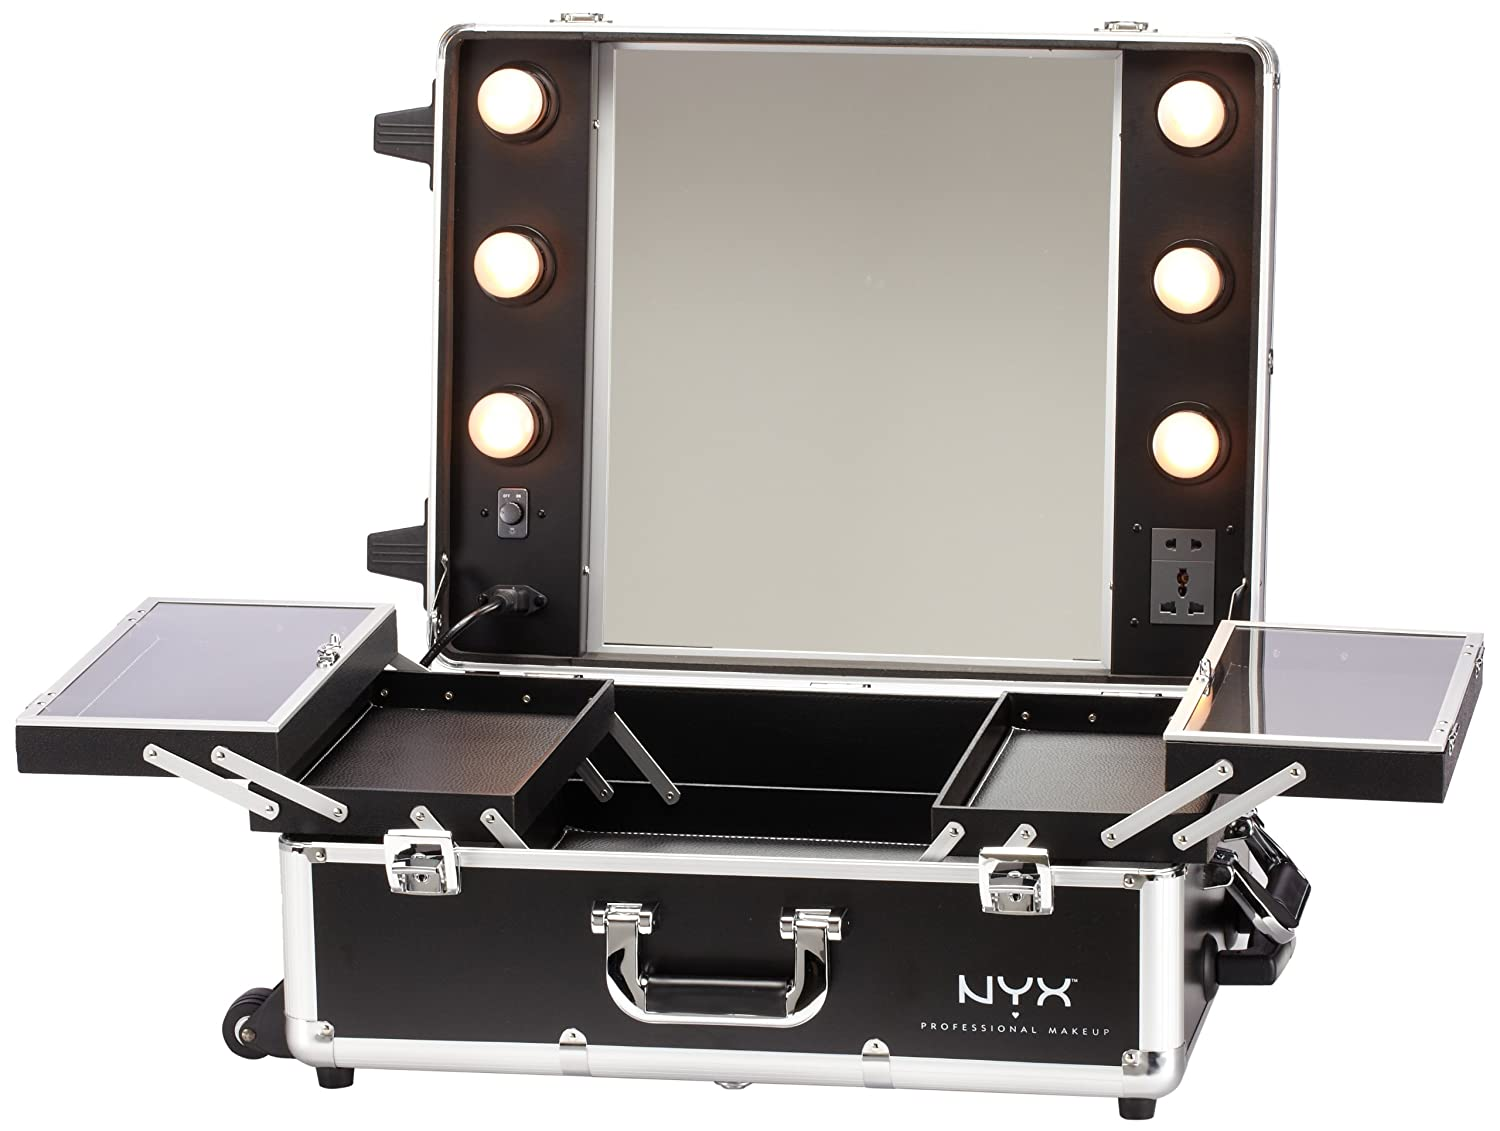 Superior Amazon.com: NYX Makeup Artist Train Case With Lights, Extra Large  Black/Silver, 1 Ounce: Luxury Beauty